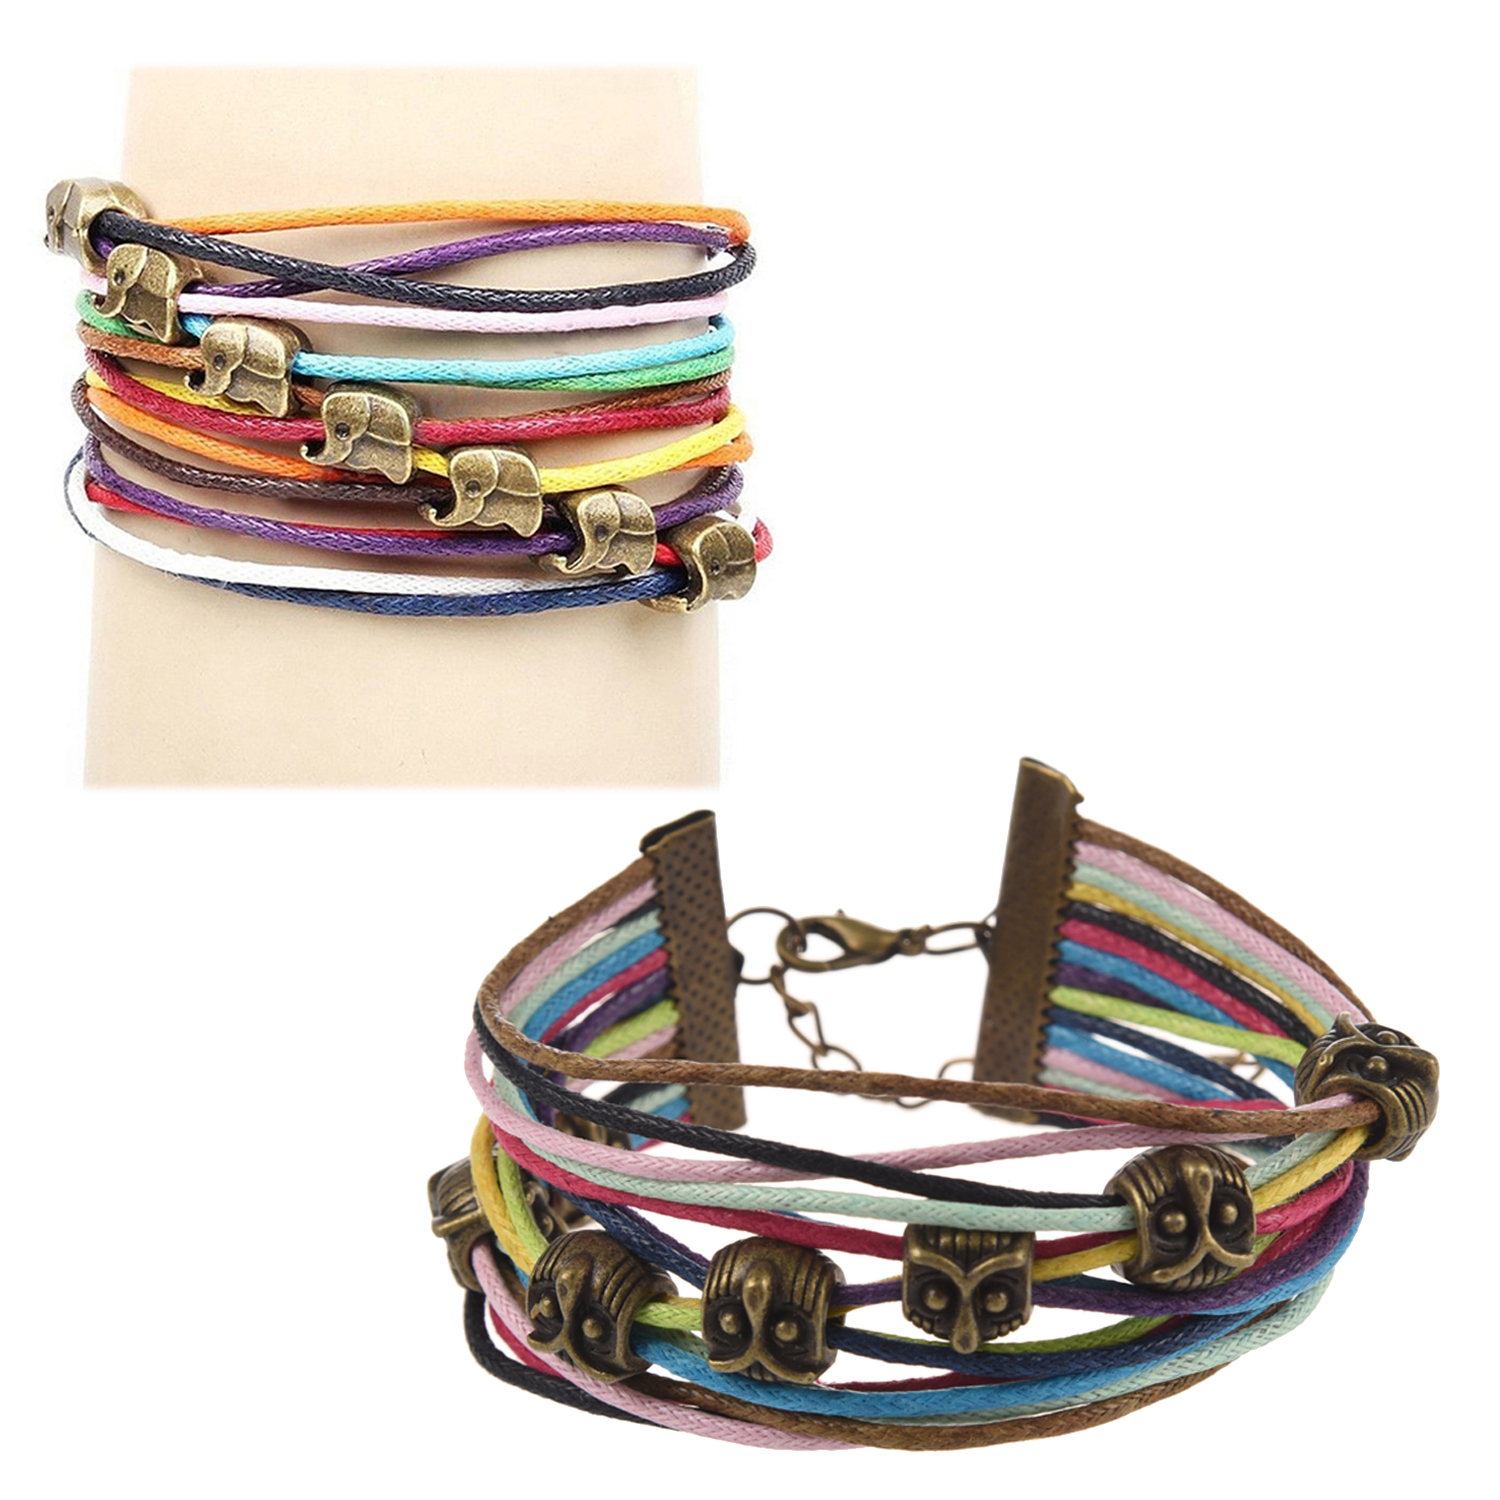 Multilayer-Wrap-Braided-Rope-Lucky-Charms-Bracelet-Elephant-Pattern-Q4G7